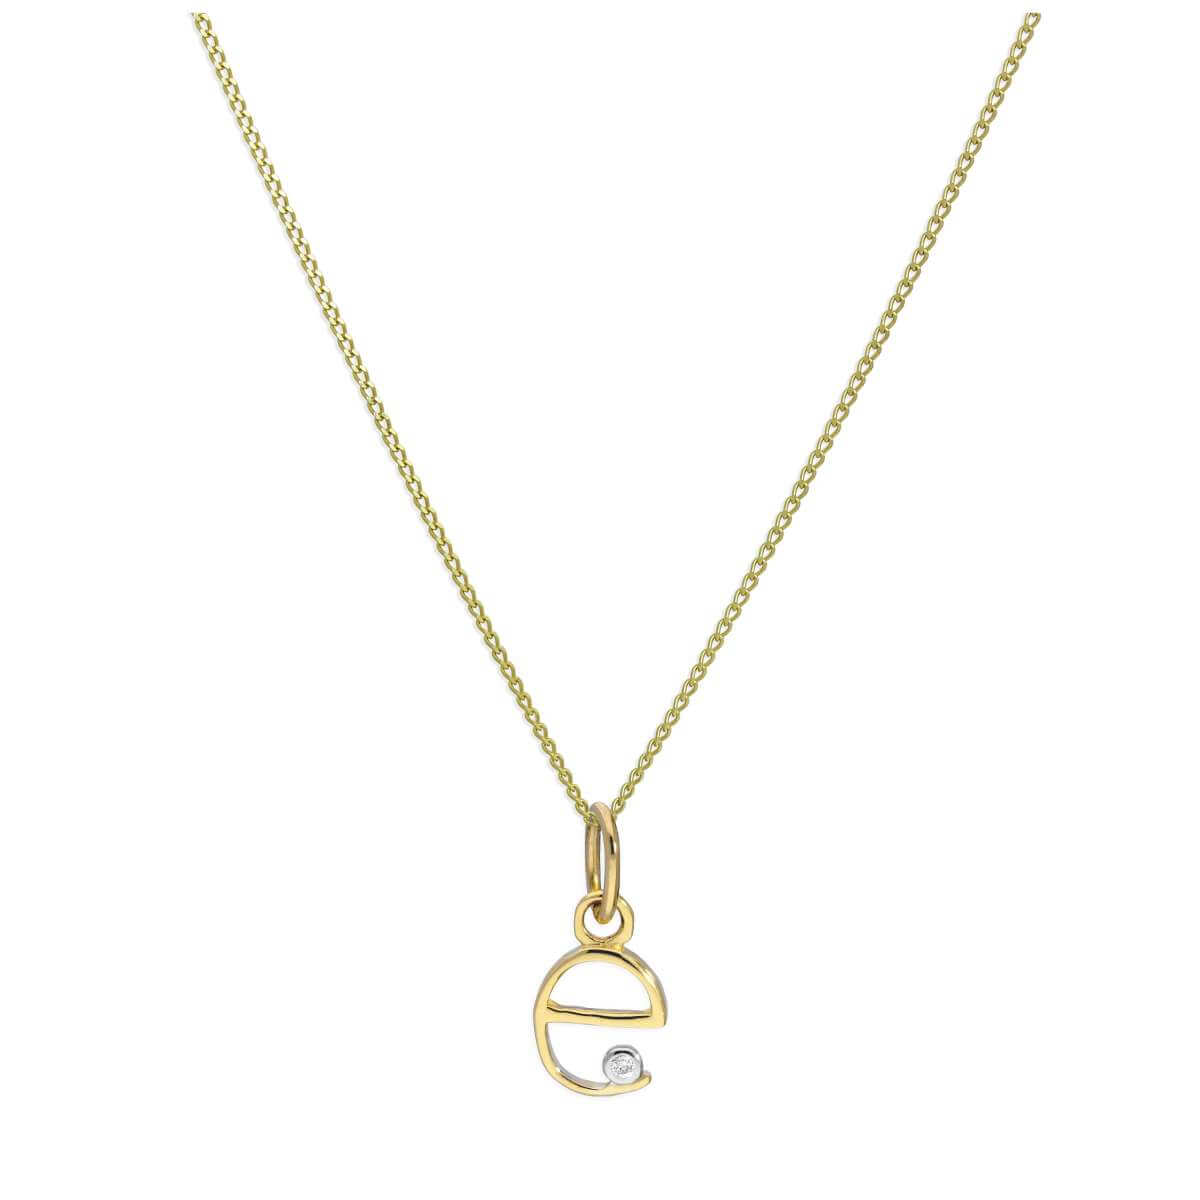 9ct Yellow Gold Single Stone Diamond 0.4 points Letter E Necklace Pendant 16 - 20 Inches